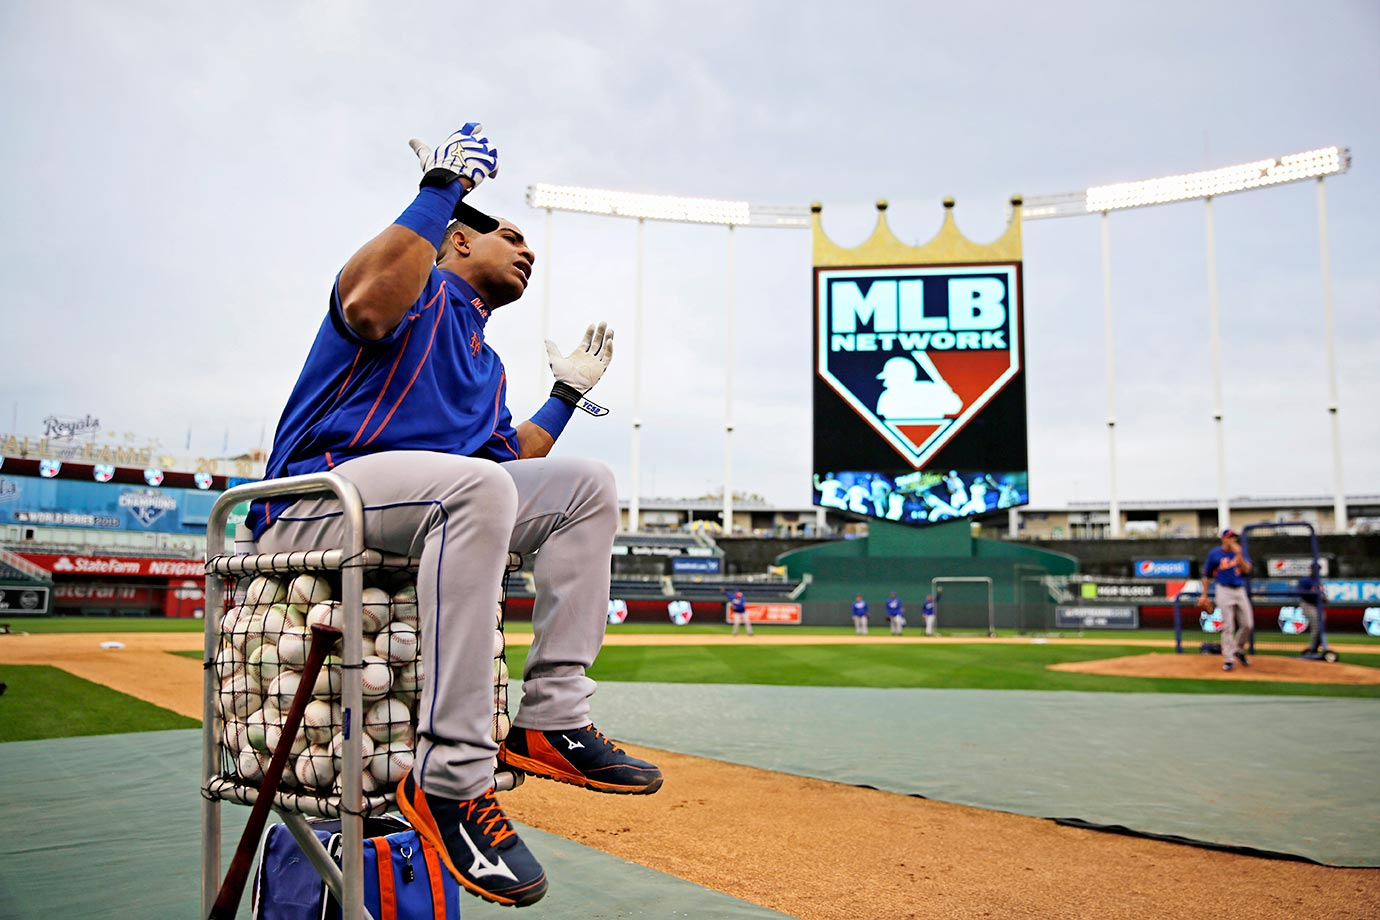 Yoenis Cespedes of the New York Mets sits on a basket of balls at a game against the Kansas City Royals.